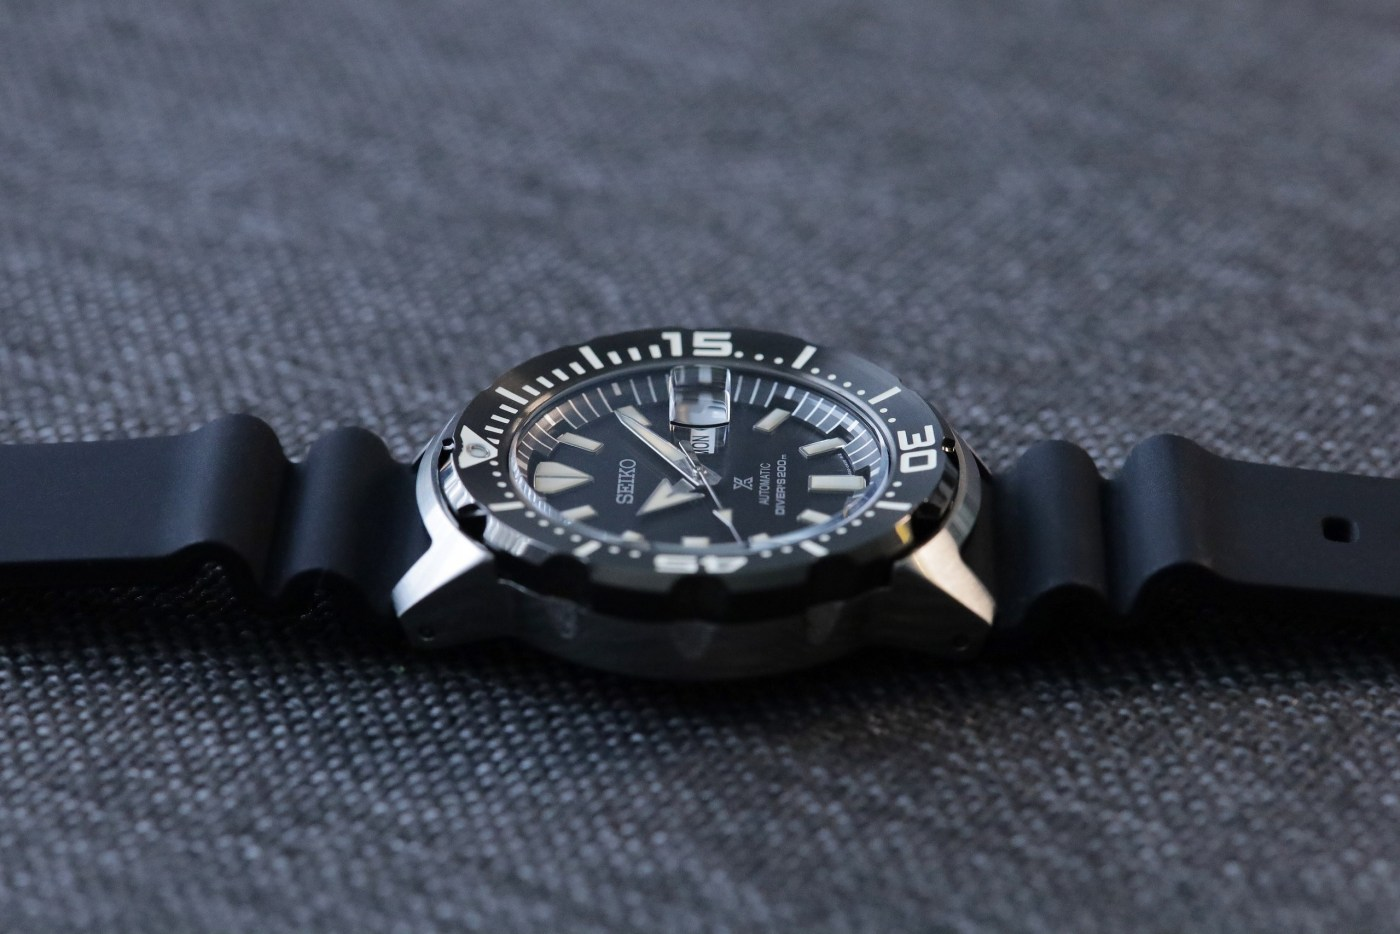 Seiko-Prospex-SRPD27-Monster-Automatic-Diver-side-view.jpg